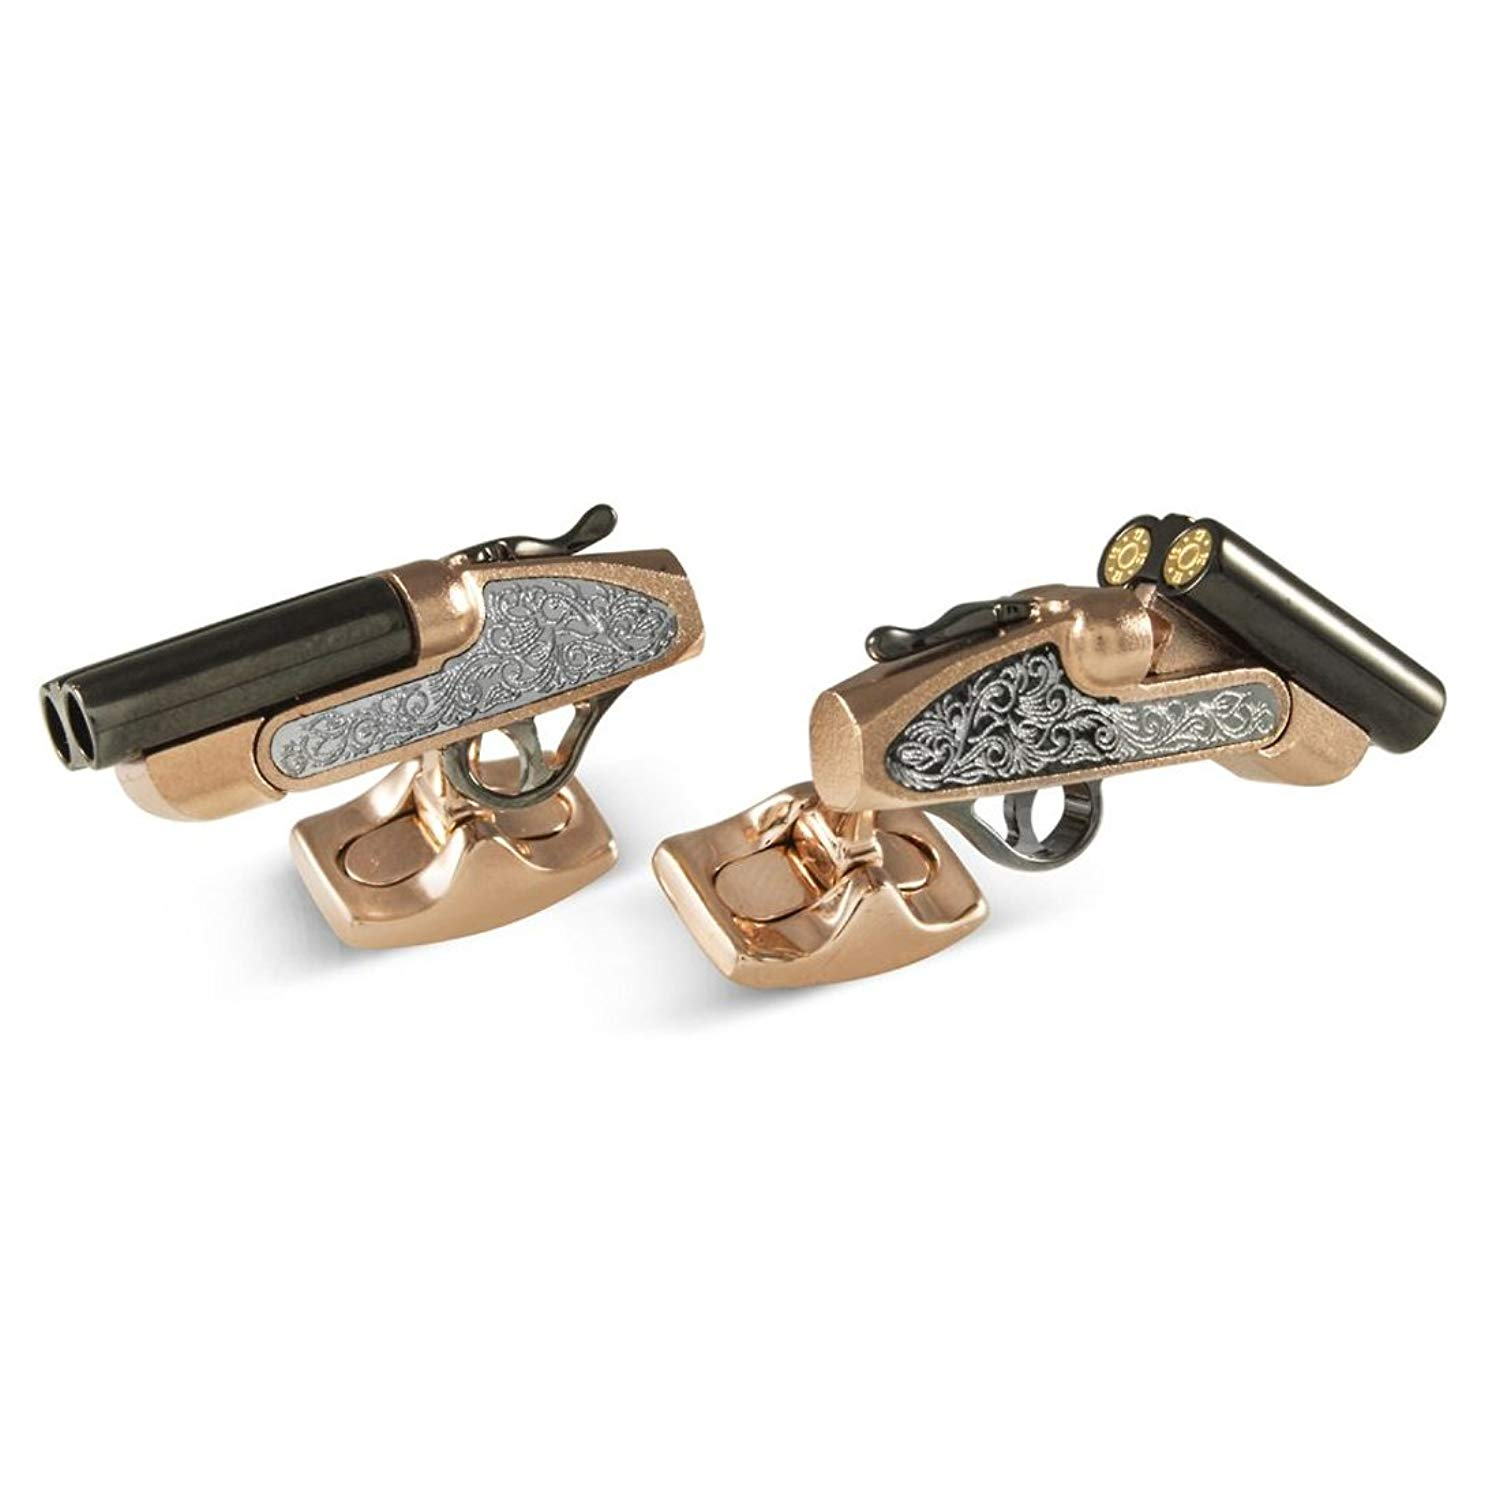 Deakin & Francis UK Rose Gold Plated and Sterling Silver Moving Shotgun Cufflinks